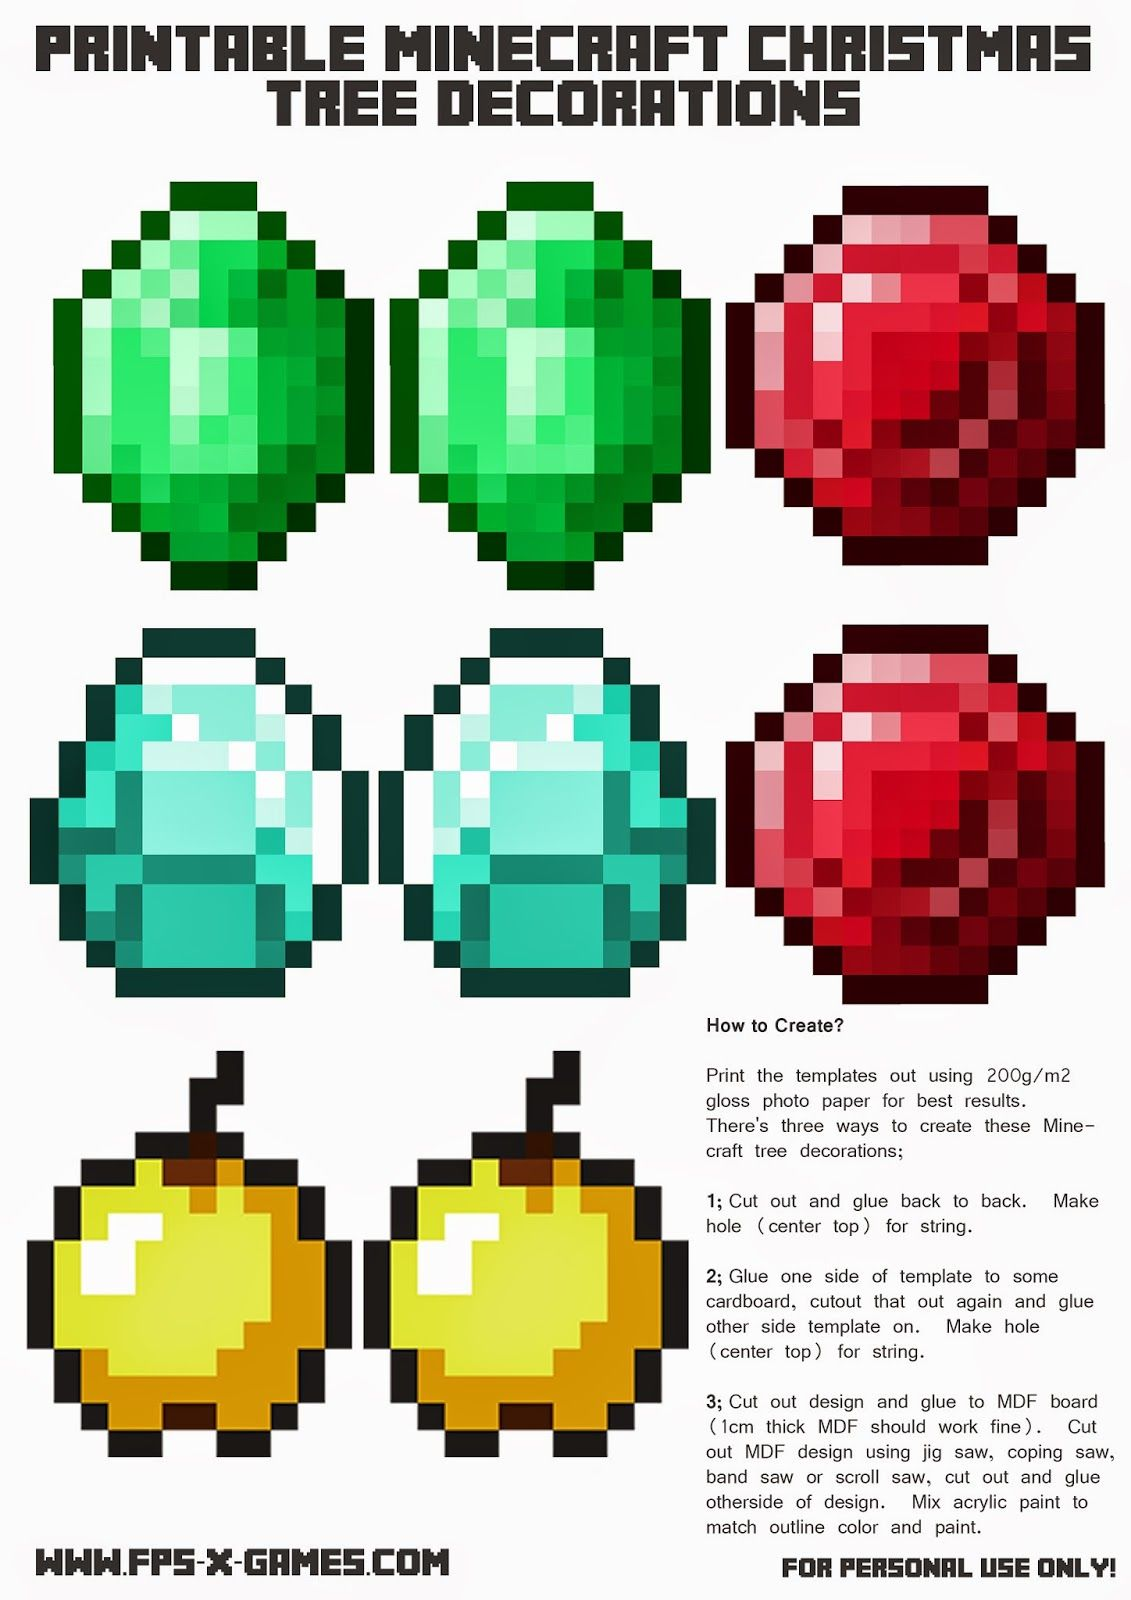 Christmas Minecraft Decorations.Printable Minecraft Christmas Tree Decoration Template